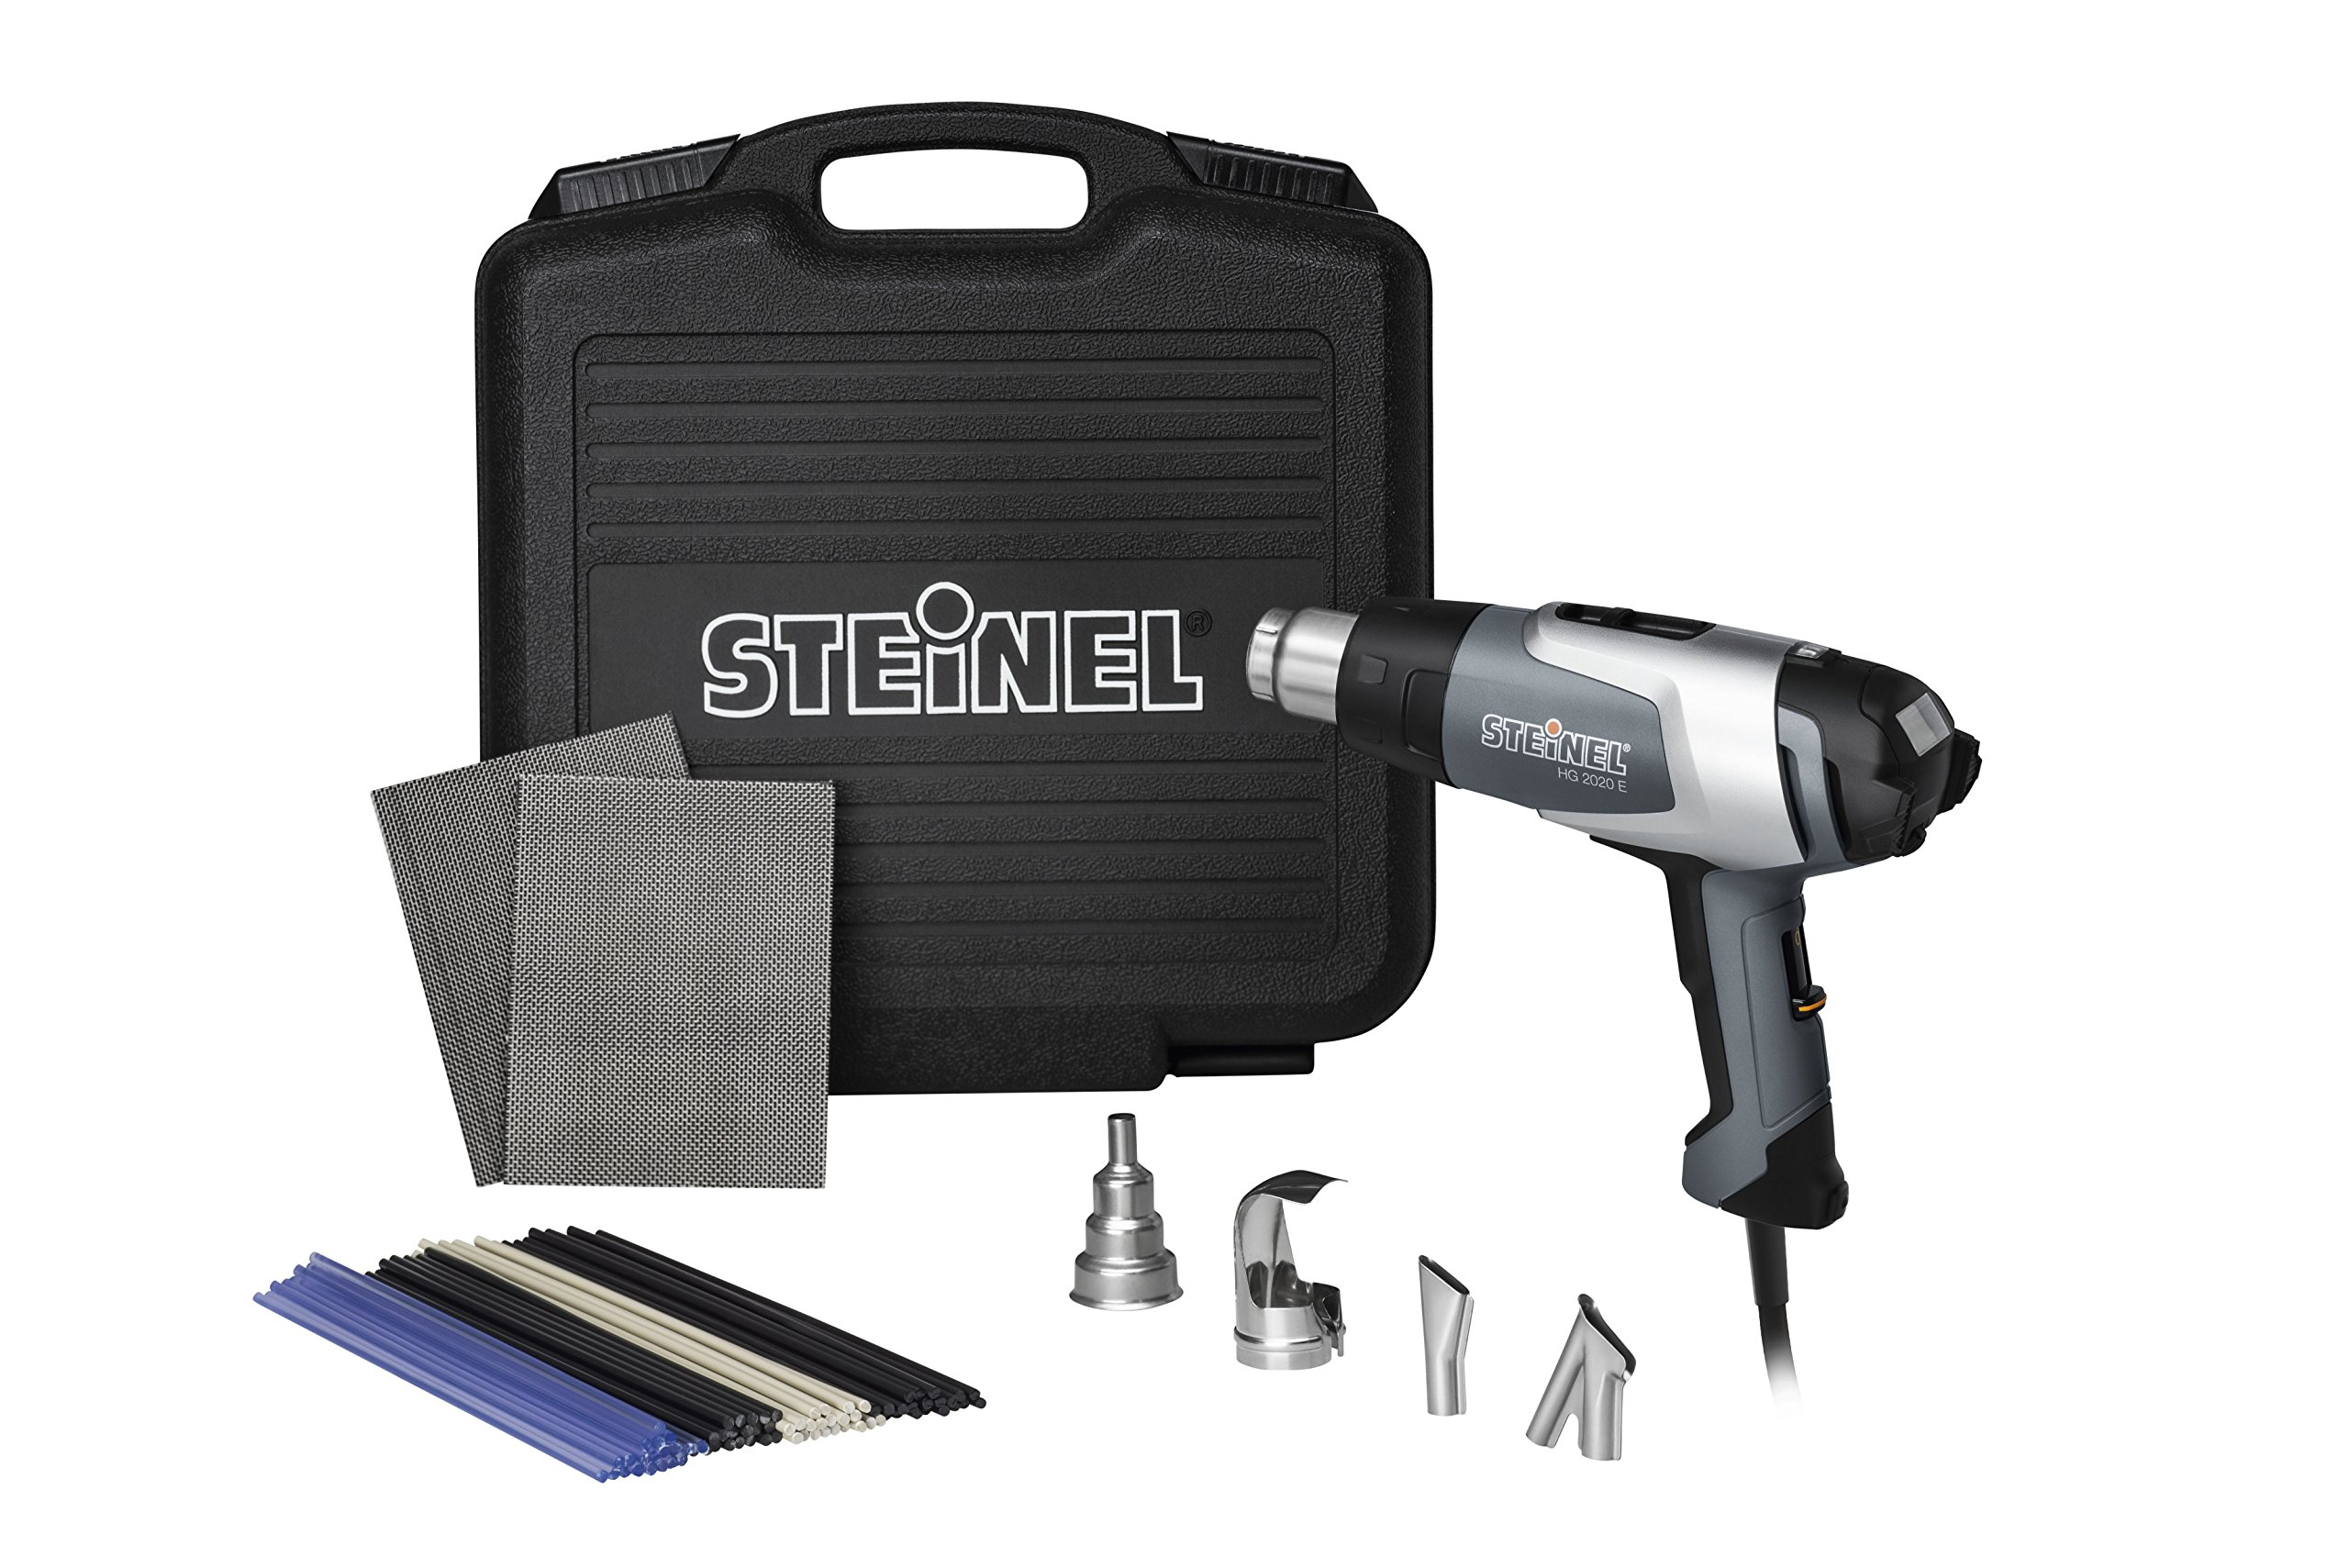 Steinel HL 2020 E Plastic Welding Kit - incl. heat gun with LCD-Display and adjustable temperature, hot air gun set for shaping and welding plastics and PVC floorings